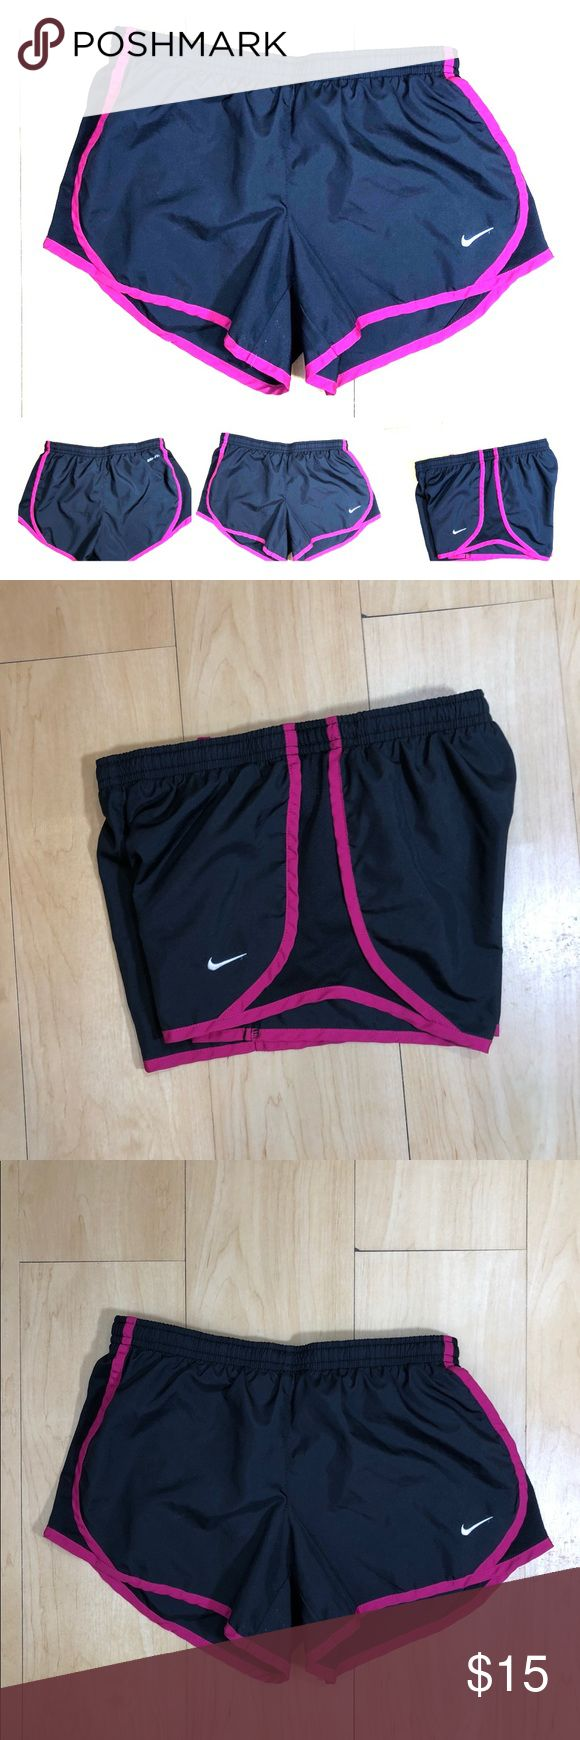 Nike dri-fit short for girl size M Excellent condition dri-fit short for girls . Adjustable waist. Nike Bottoms Shorts